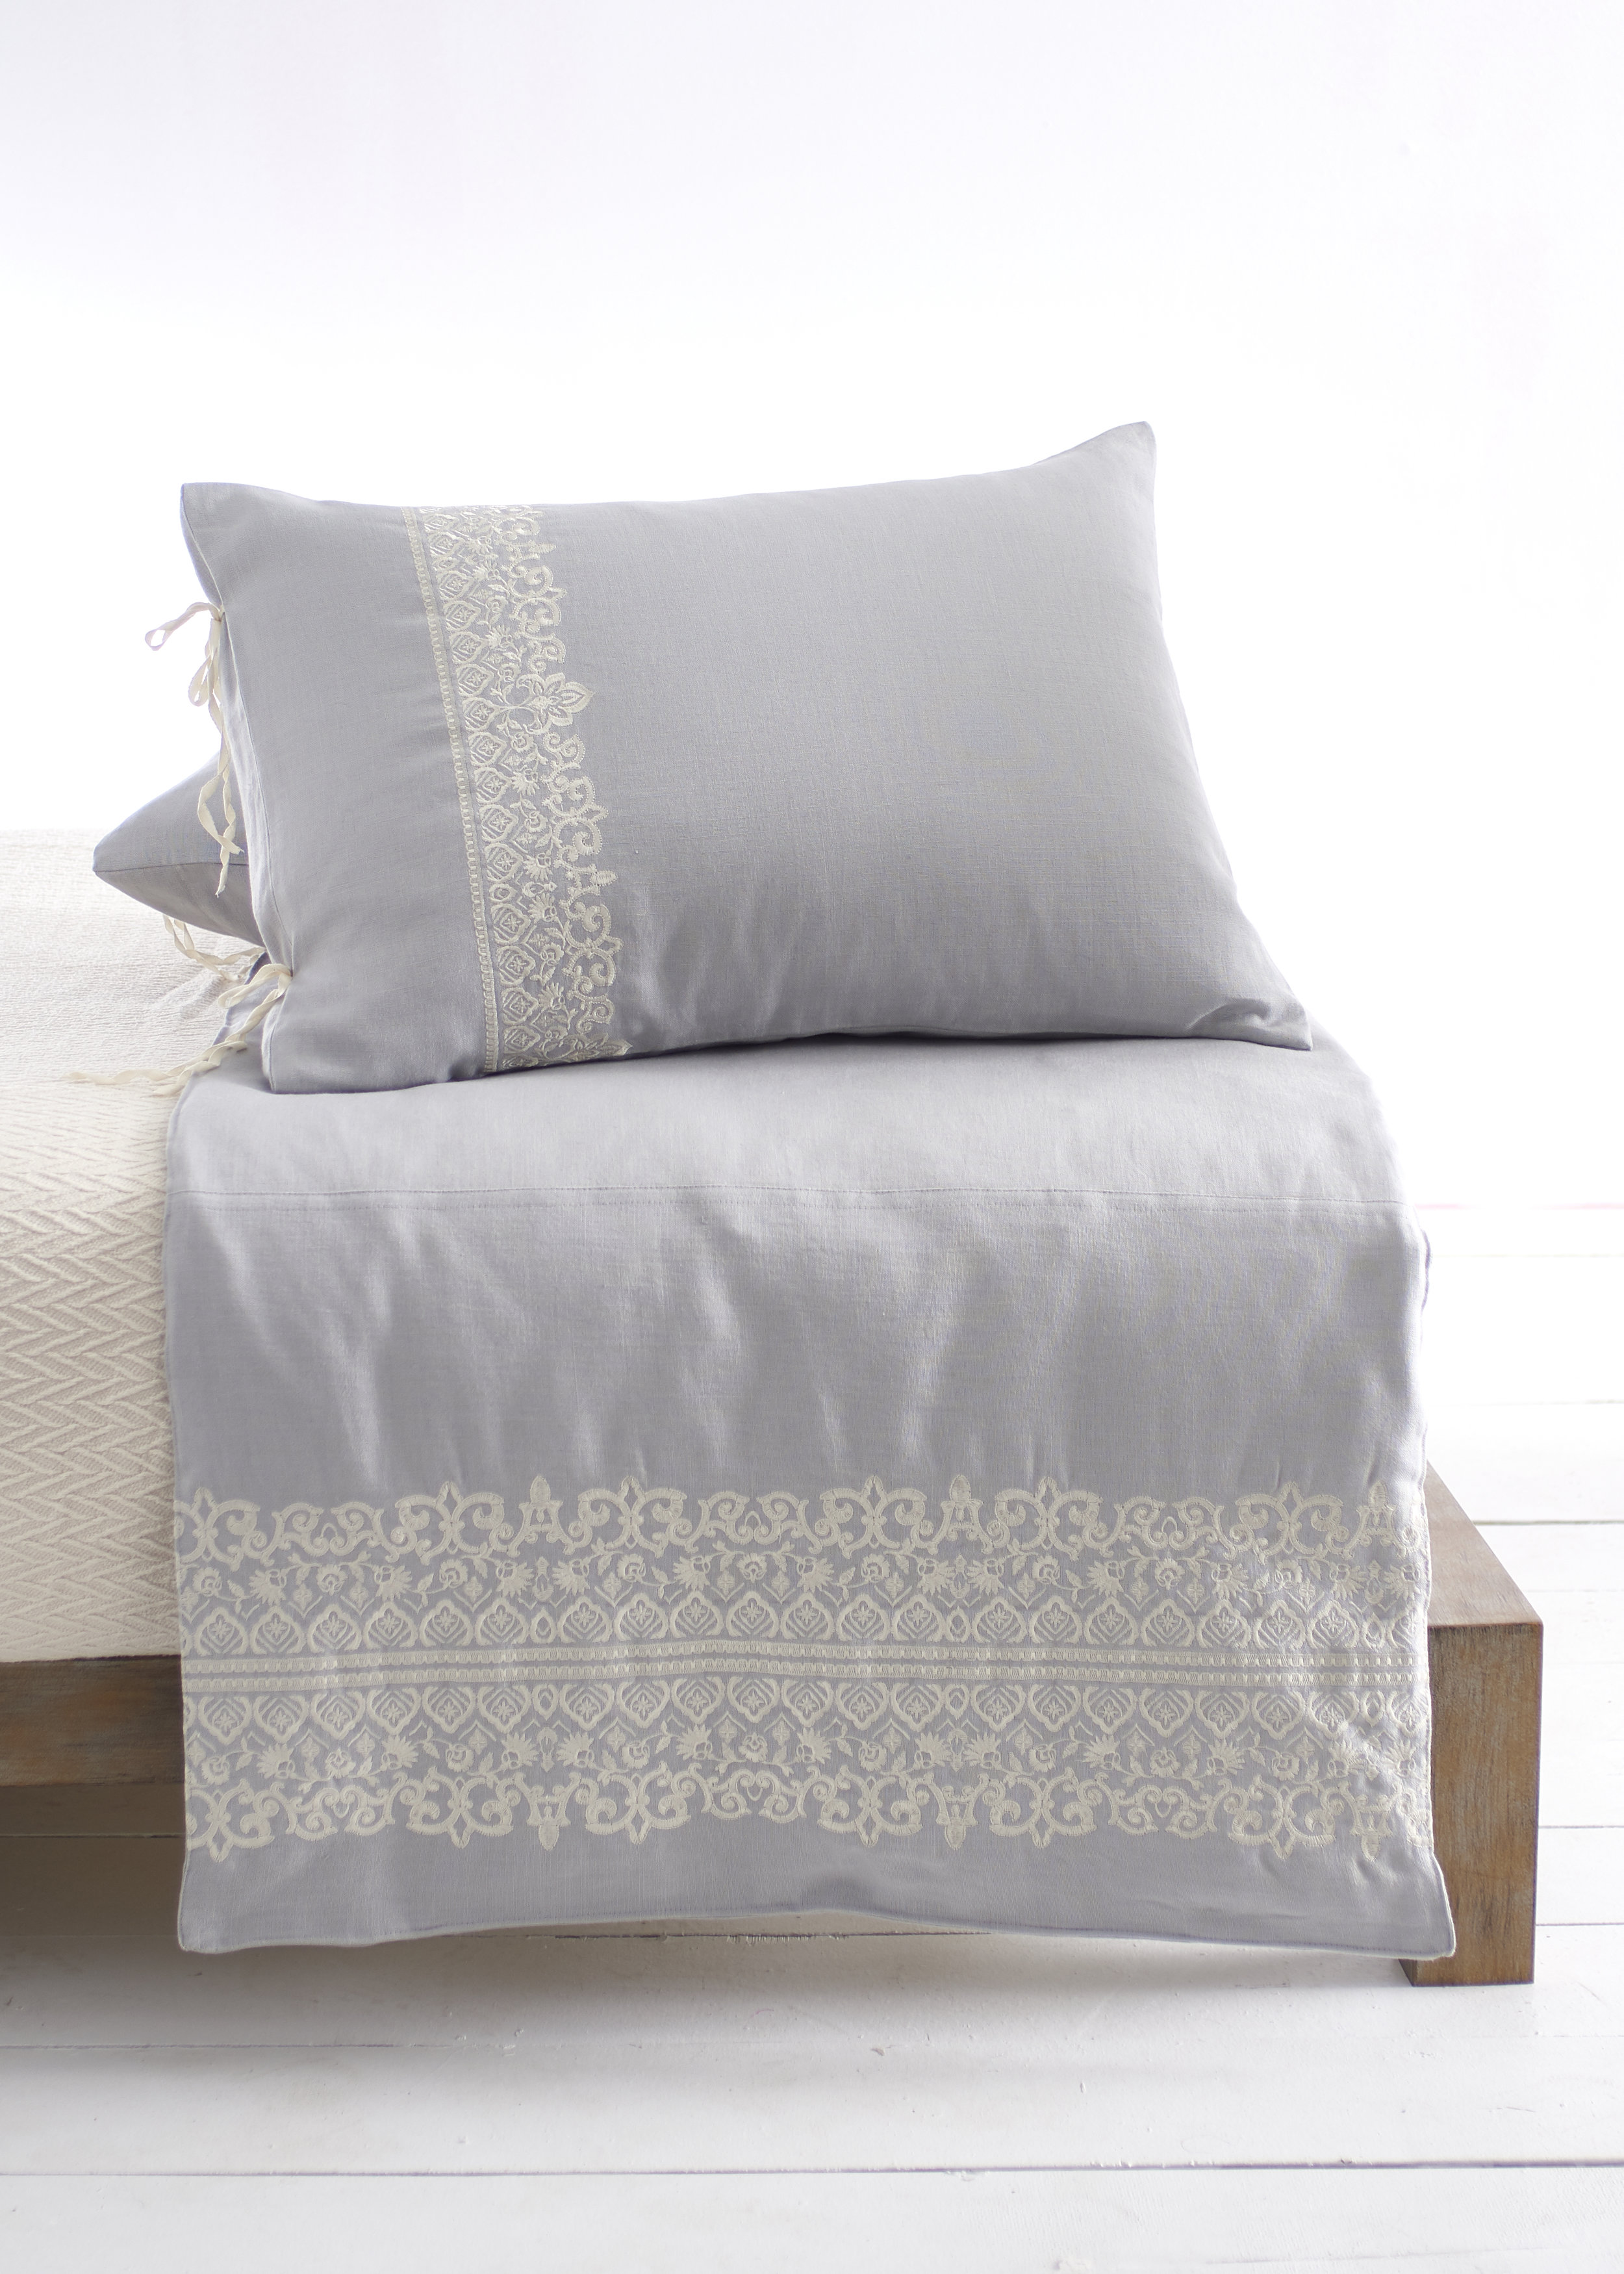 New Item — Marrakesh Counterpane . Our Counterpanes are decorative accents that are about 1/3 the height of a duvet or comforter and are placed at the foot of the bed and have matching shams that can be purchased separately. Counterpanes come in 3 sizes—Twin, Full/Queen, and King. Our Counterpanes are filled with alternative down. Our Marrakesh Counterpane is grey Belgium linen with ivory embroidery and the matching sham has natural twill cotton tie closures.